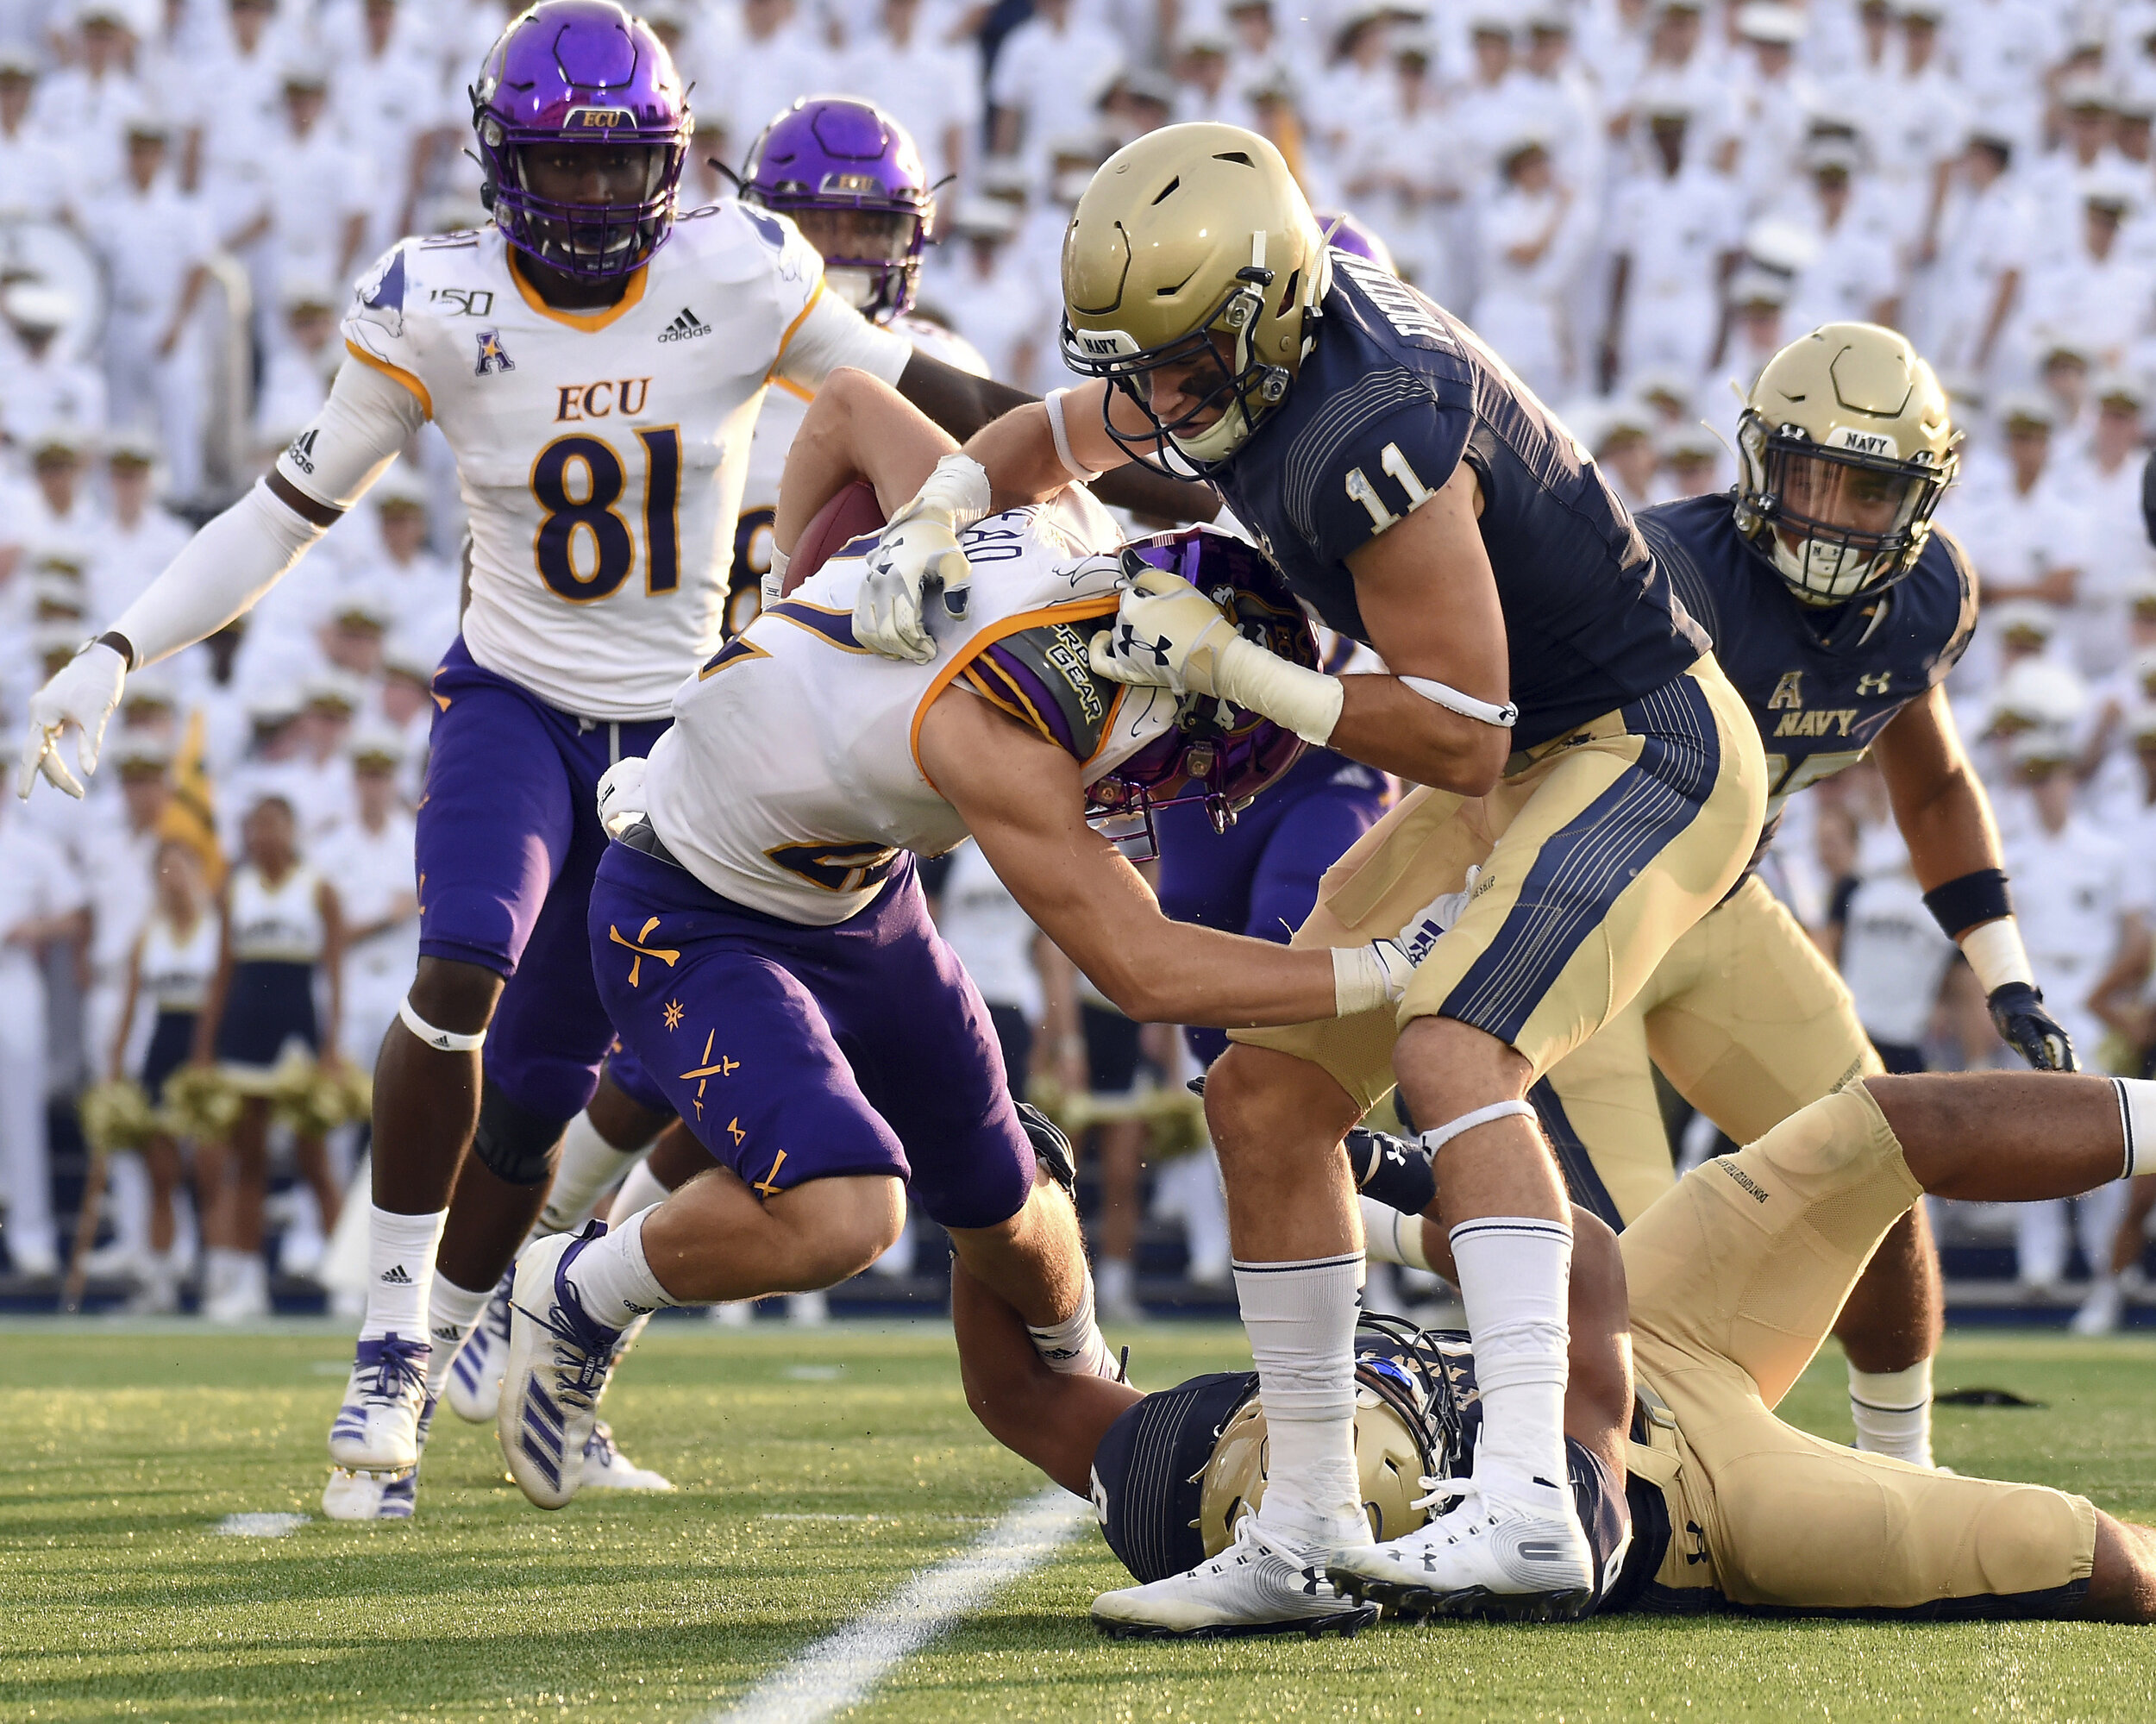 ECU fell to Navy last weekend, allowing Navy running back Malcolm Brown to gain 164 yards on the ground.  Photo from The Associated Press.